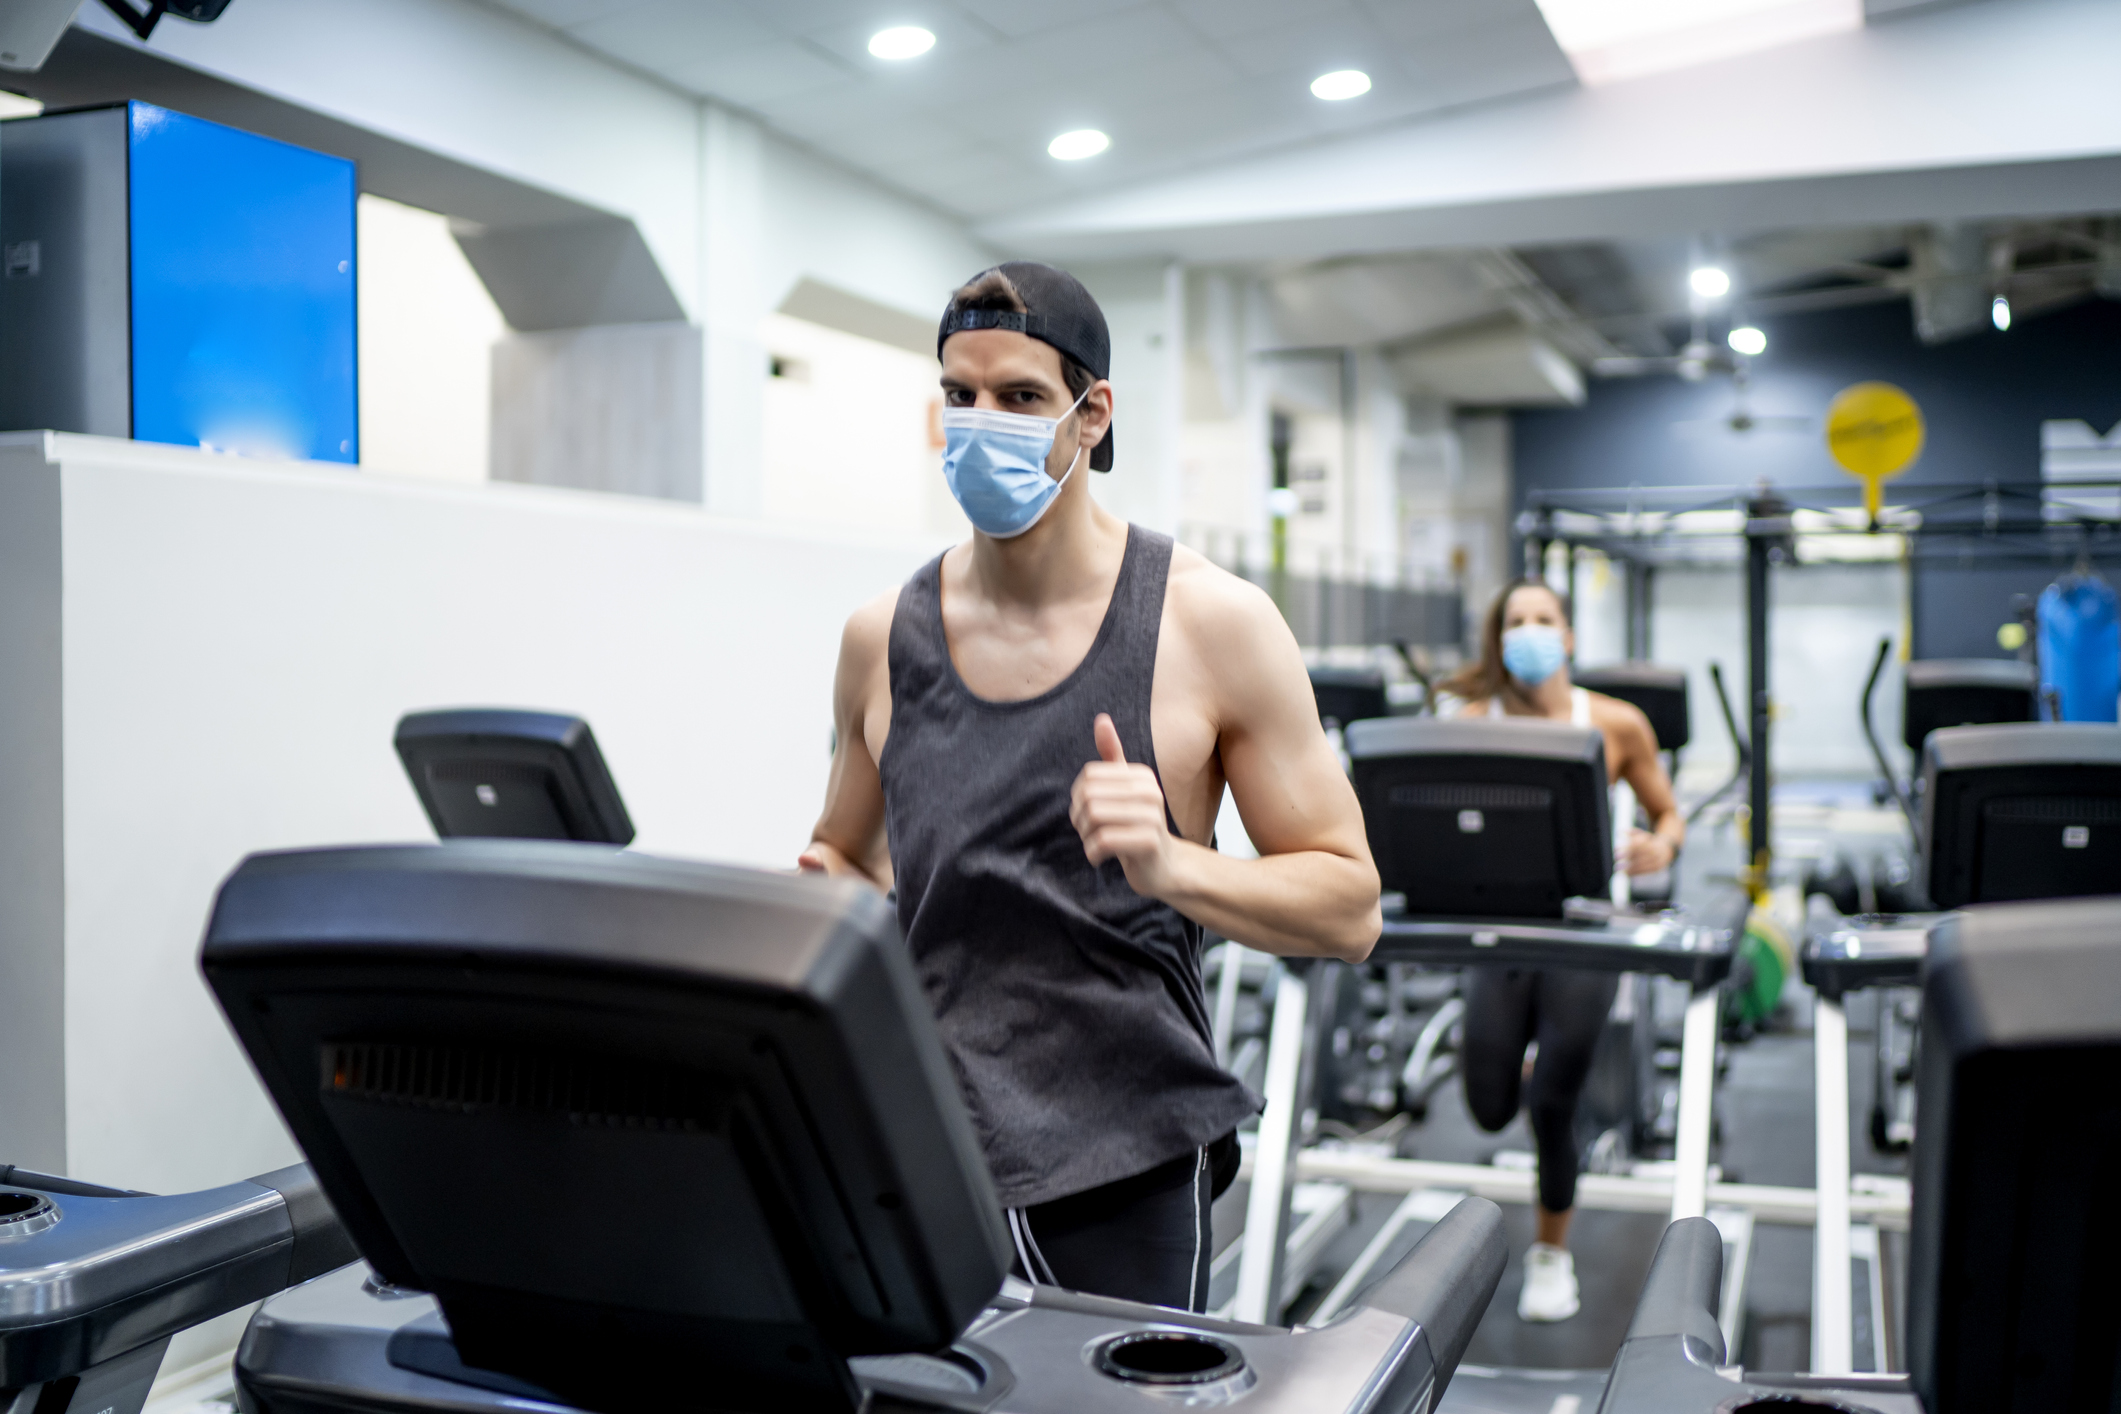 Several young people running on treadmill in gym wearing face mask.